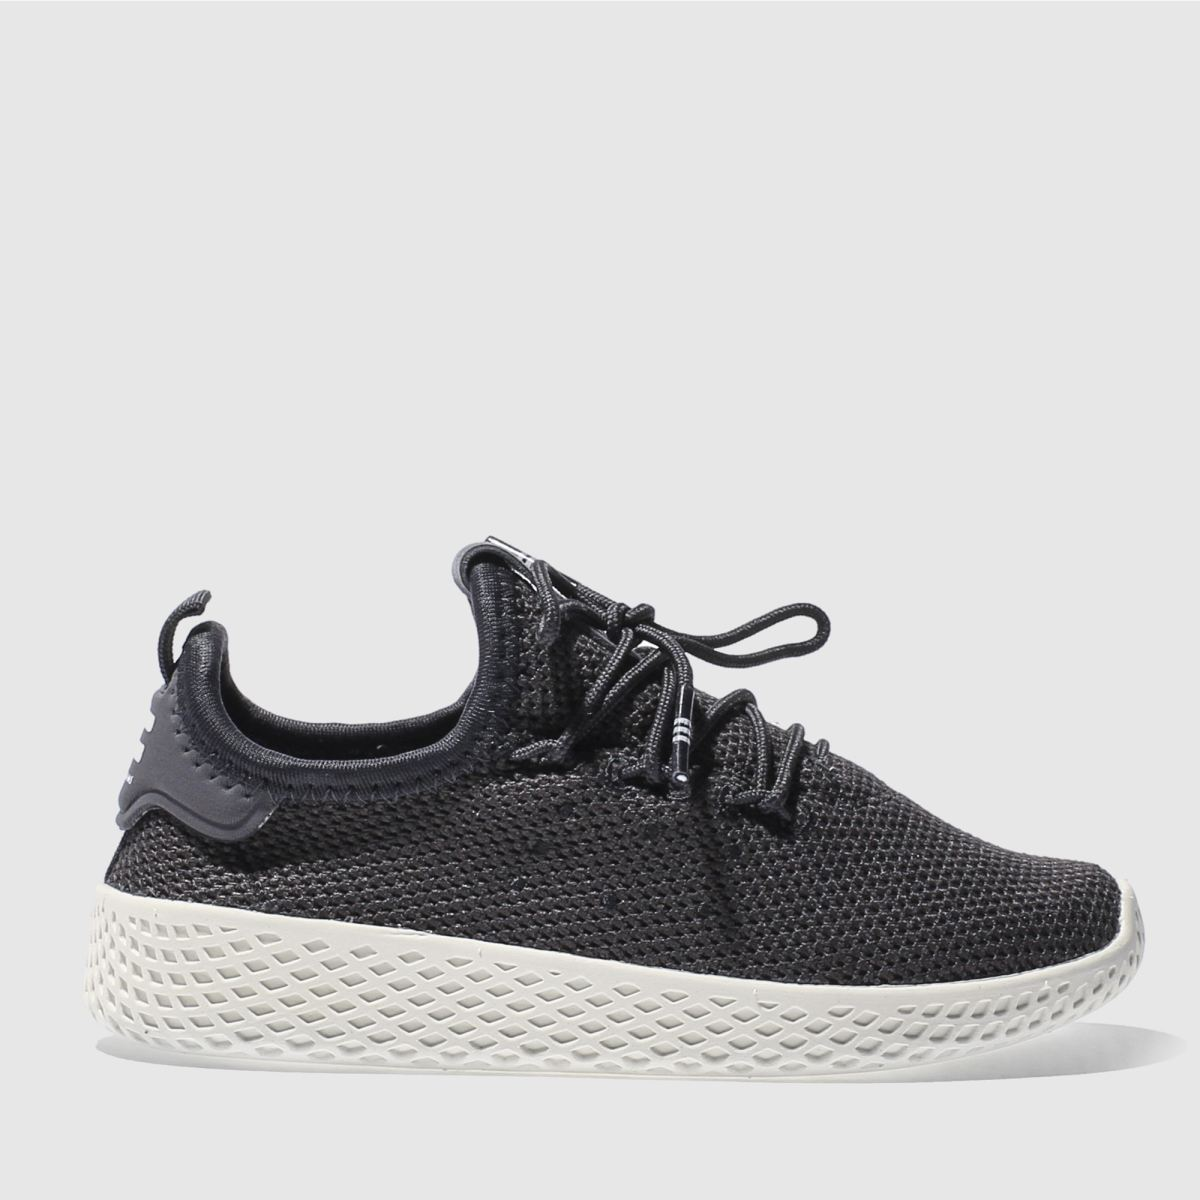 Adidas Dark Grey Tennis Hu Unisex Toddler Toddler